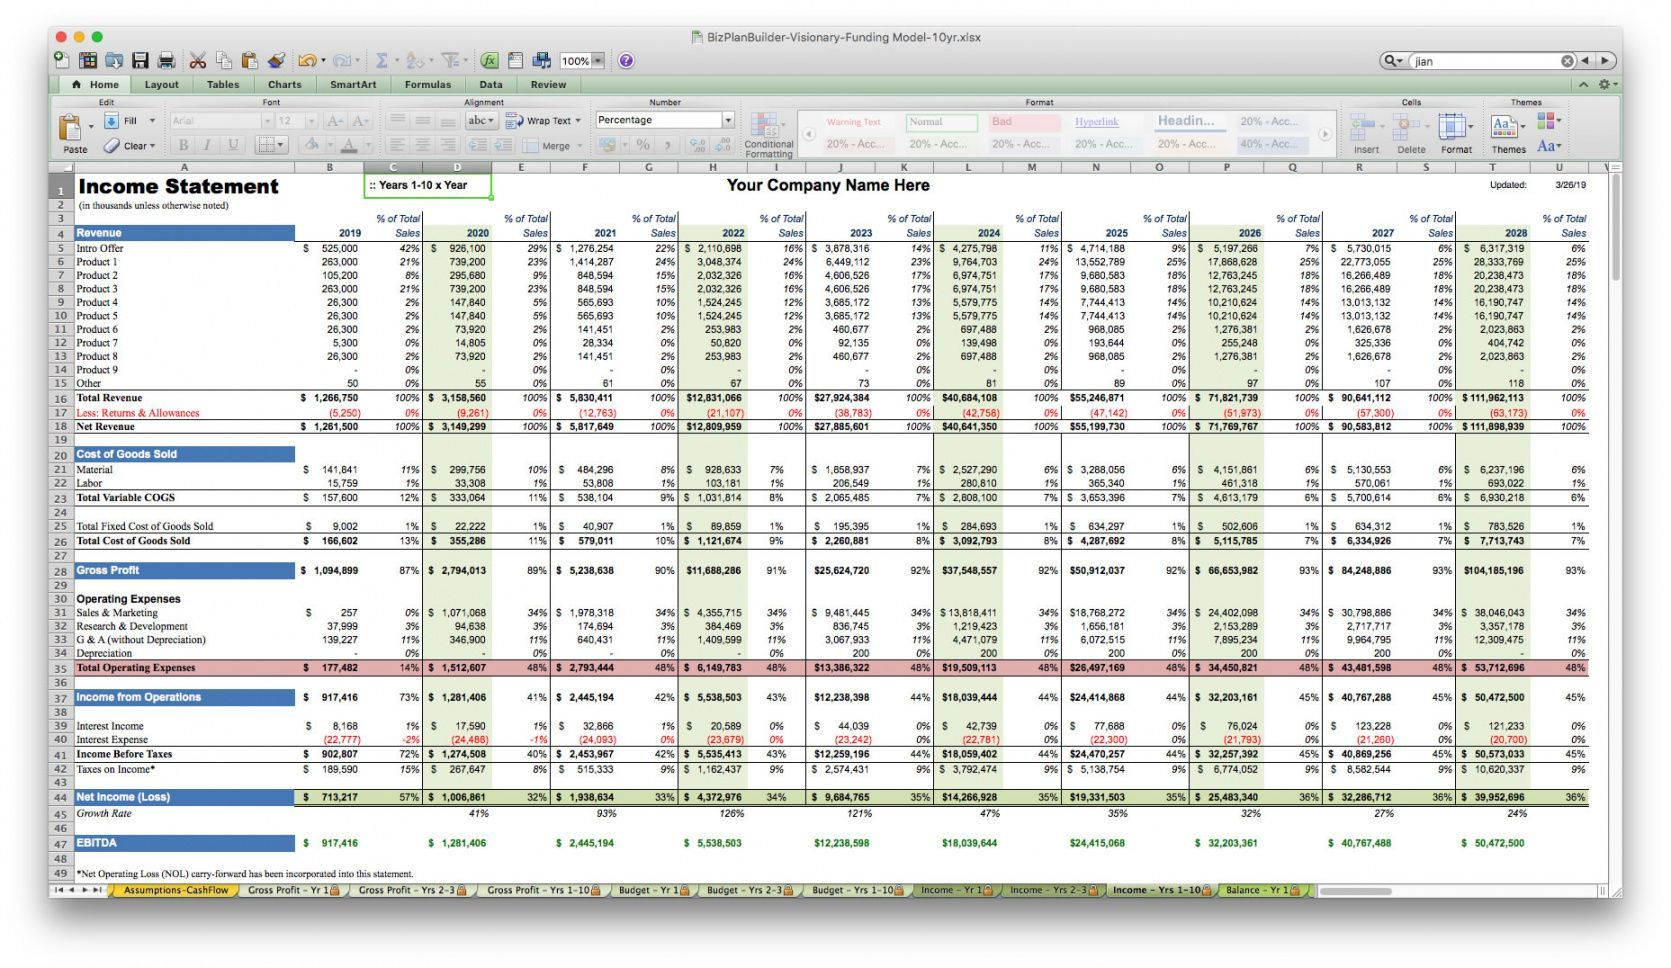 Get Our Image Of New Business Budget Plan Template Spreadsheet Template Business Financial Plan Template Business Plan Template Free Financial projections 12 months template